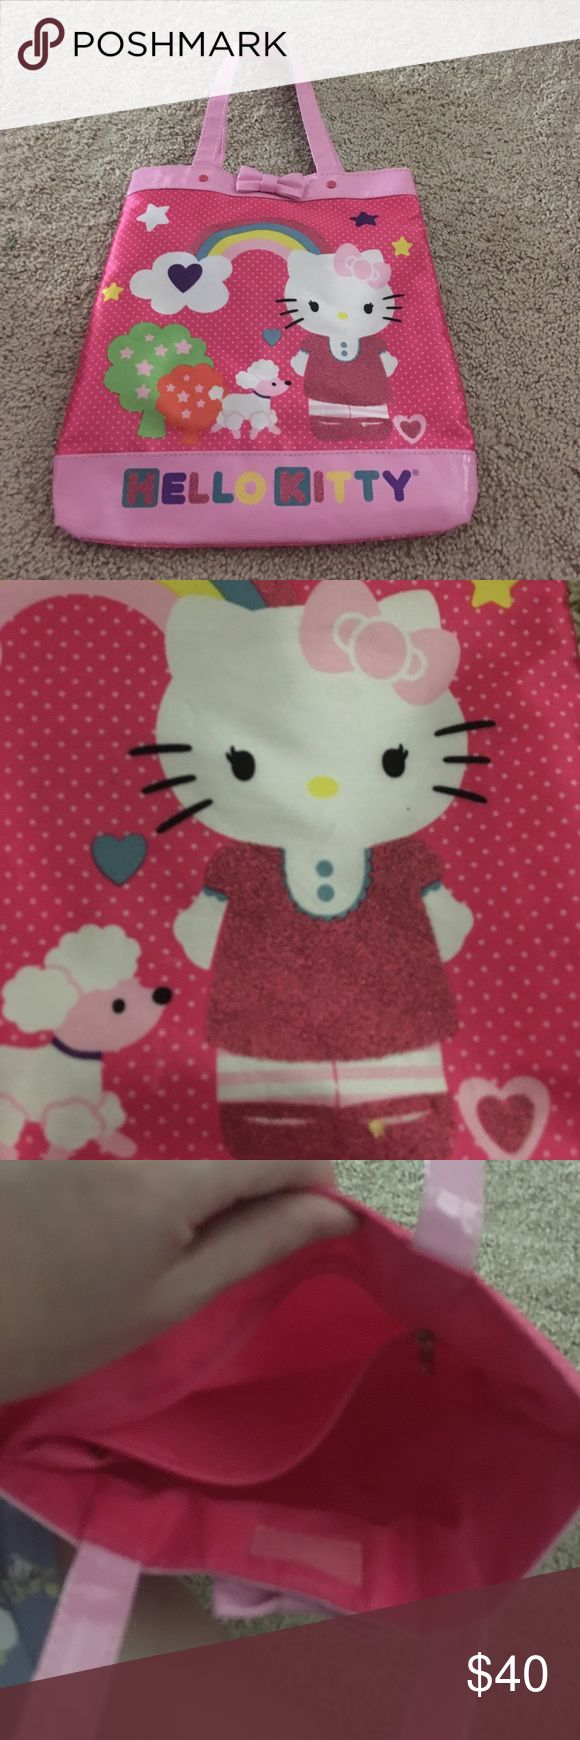 hello Kitty purse this hello Kitty purse has silk fabric in a bow on the top and hello Kitty's dress is sparkly Hello Kitty Bags Totes